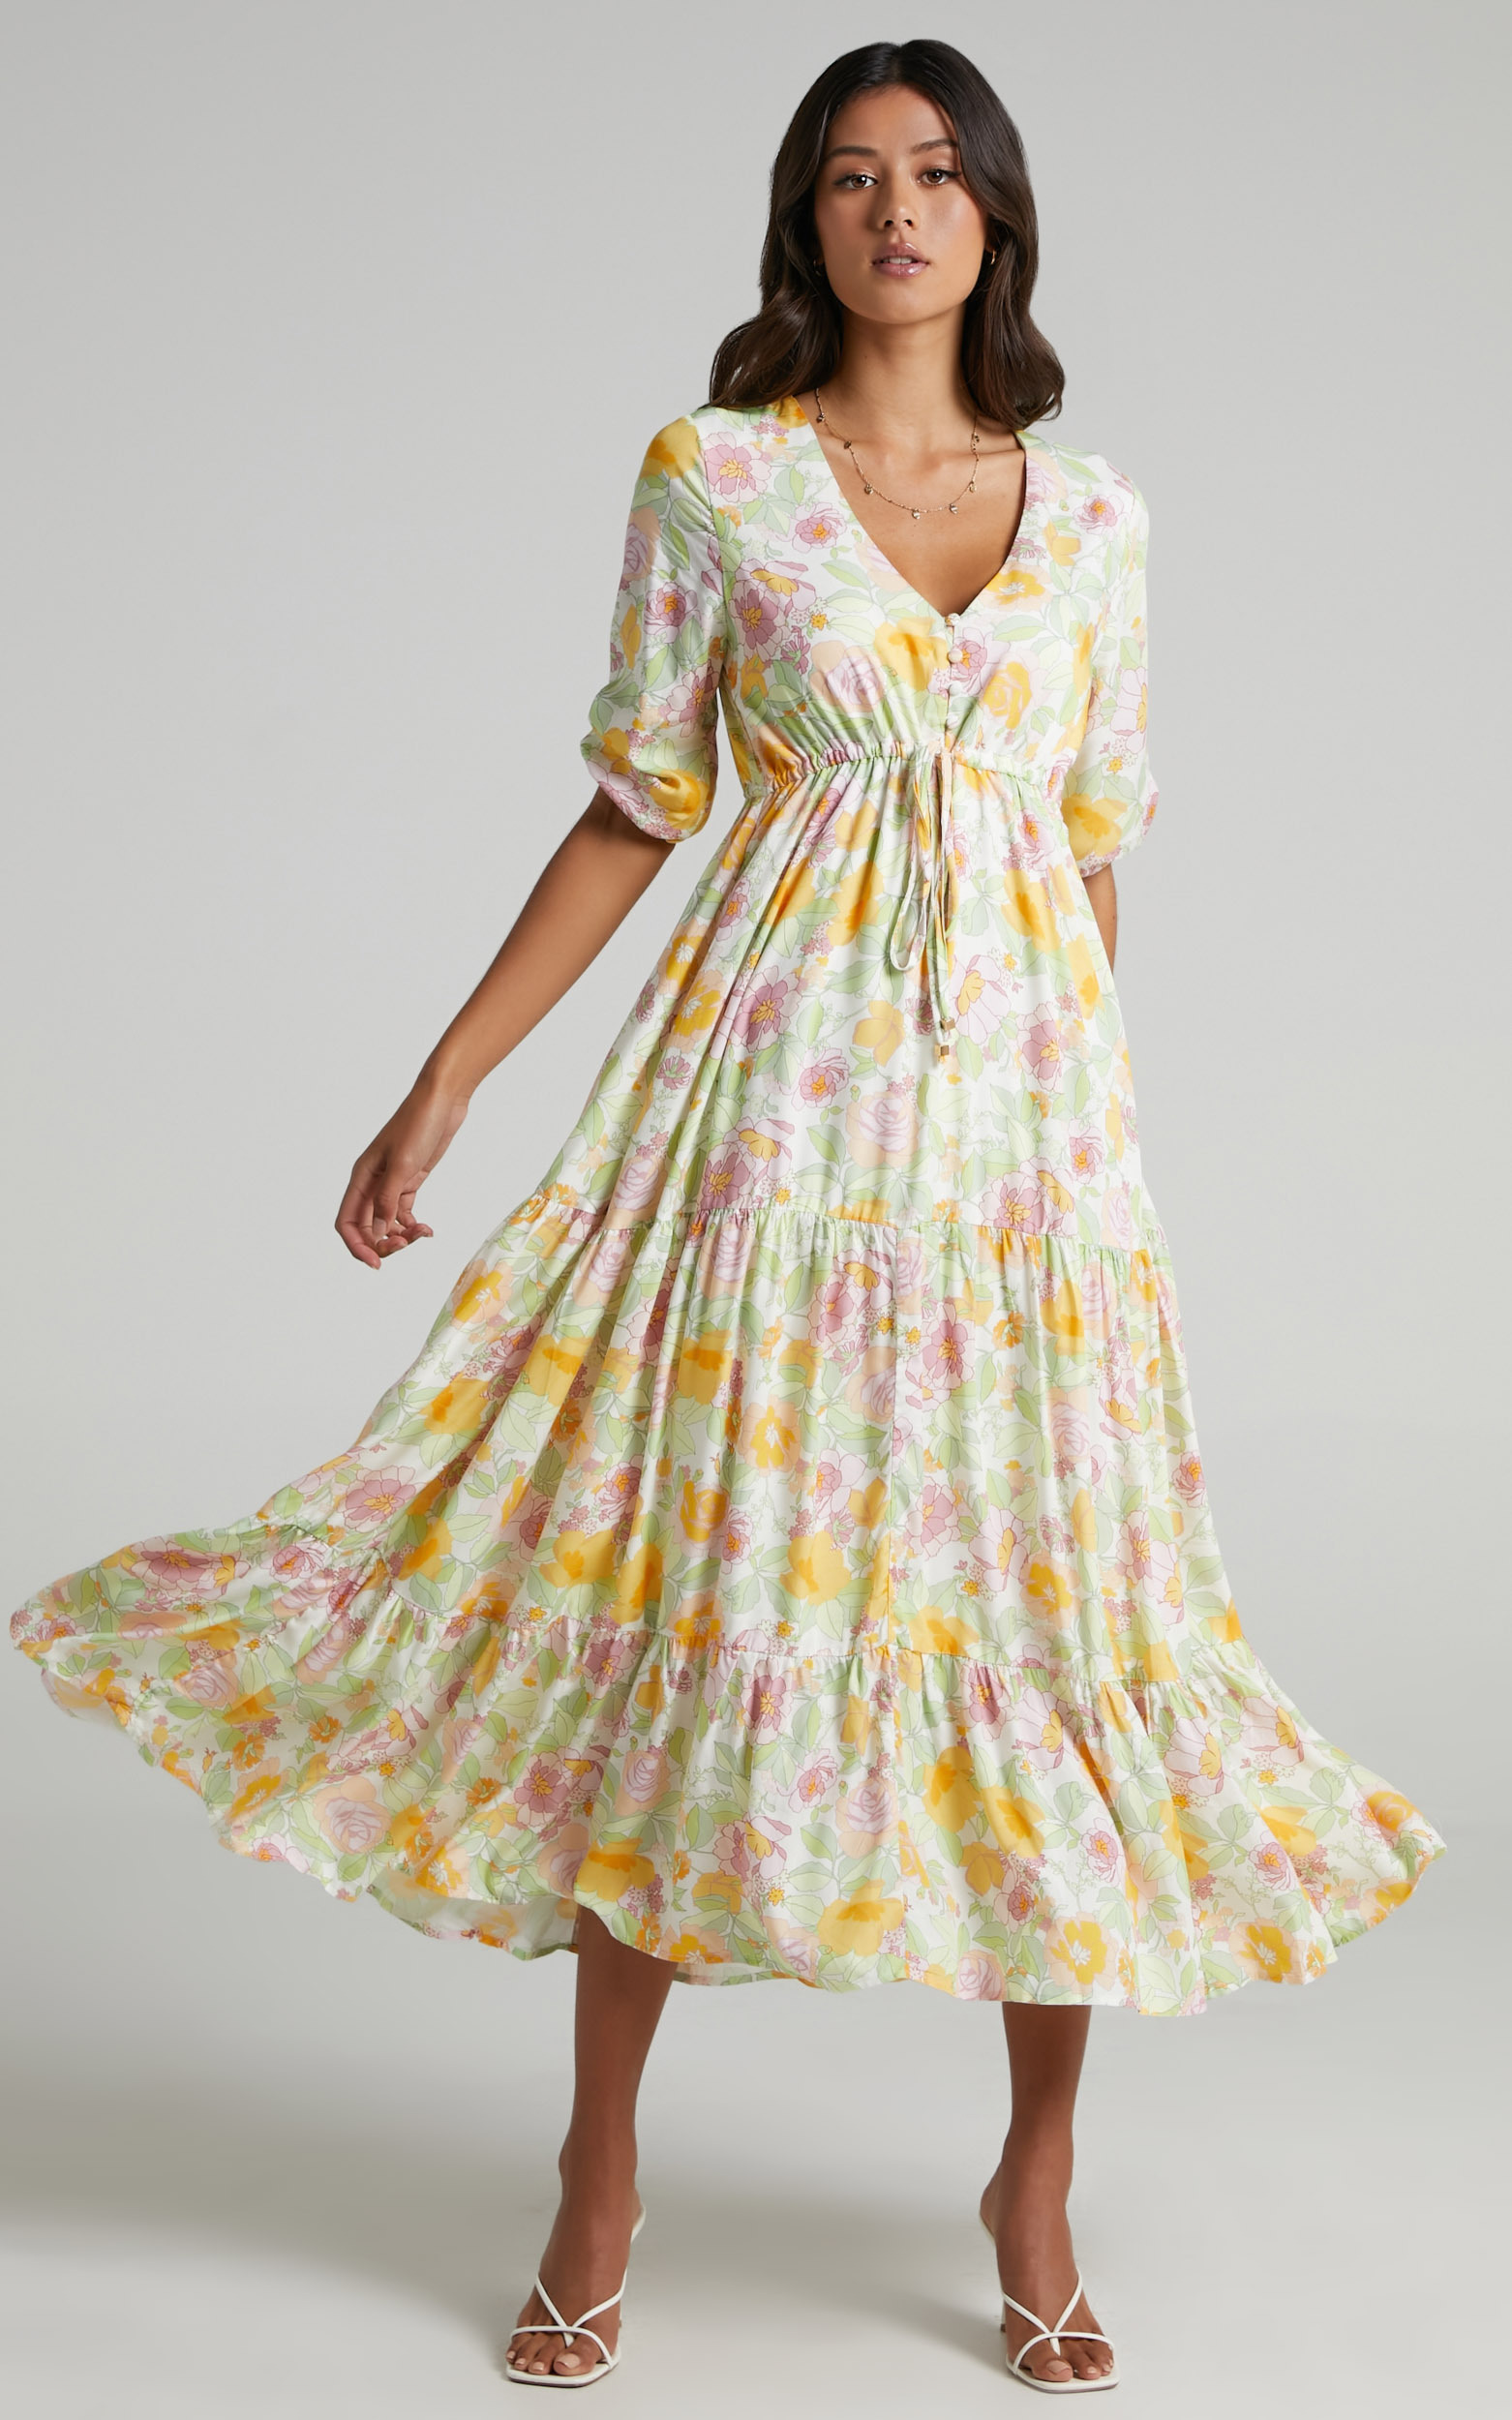 Lilibelle Dress in Linear Floral - 06, WHT2, hi-res image number null